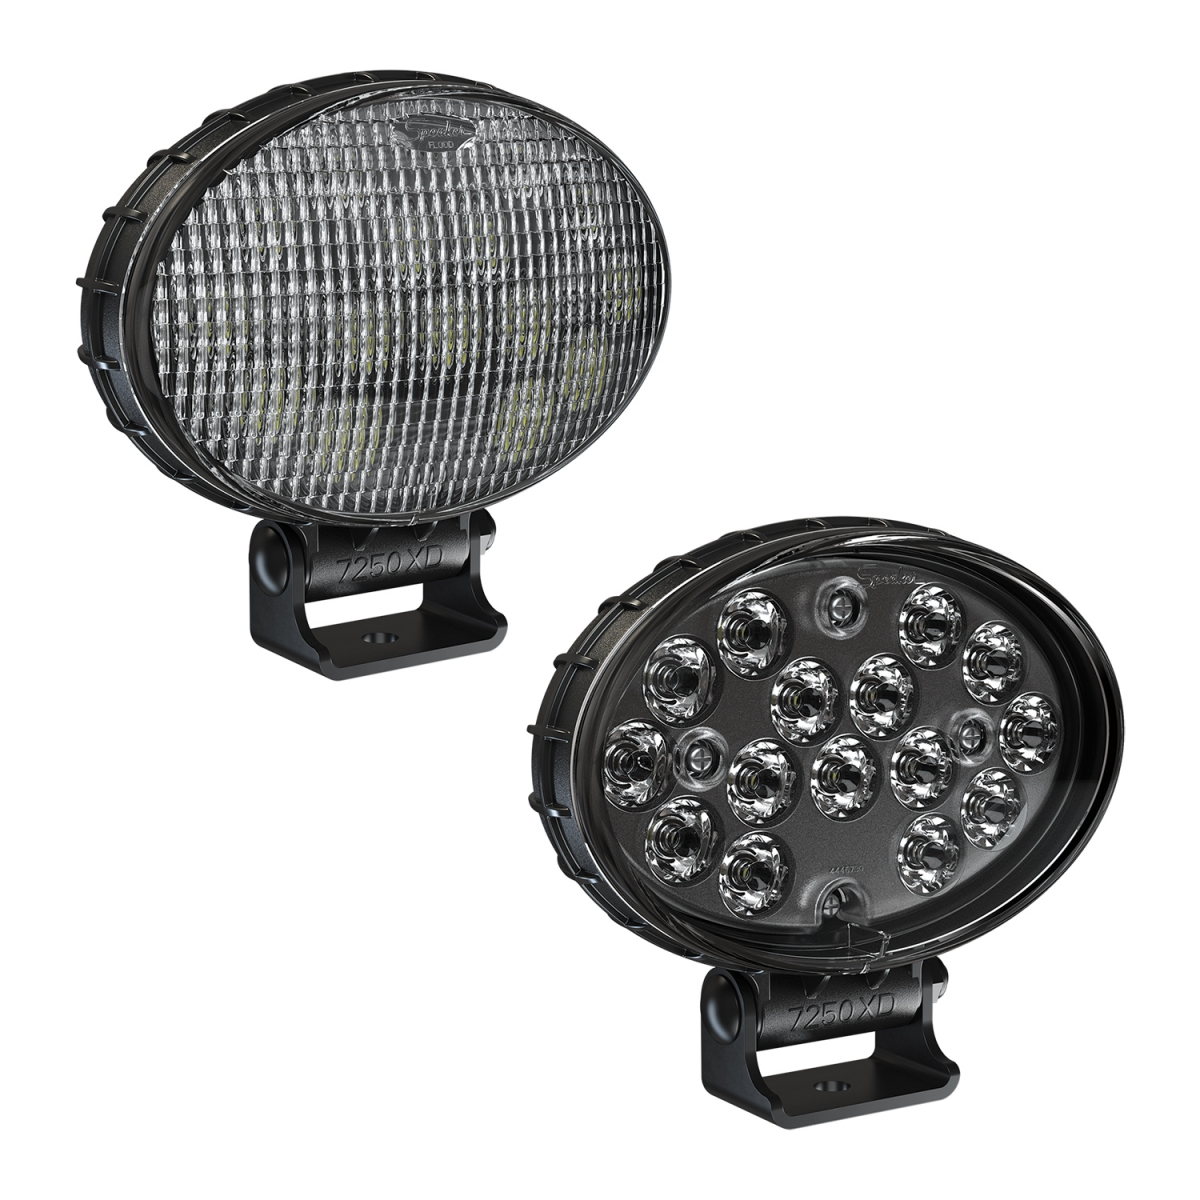 LED Work Light – Model 7250 XD